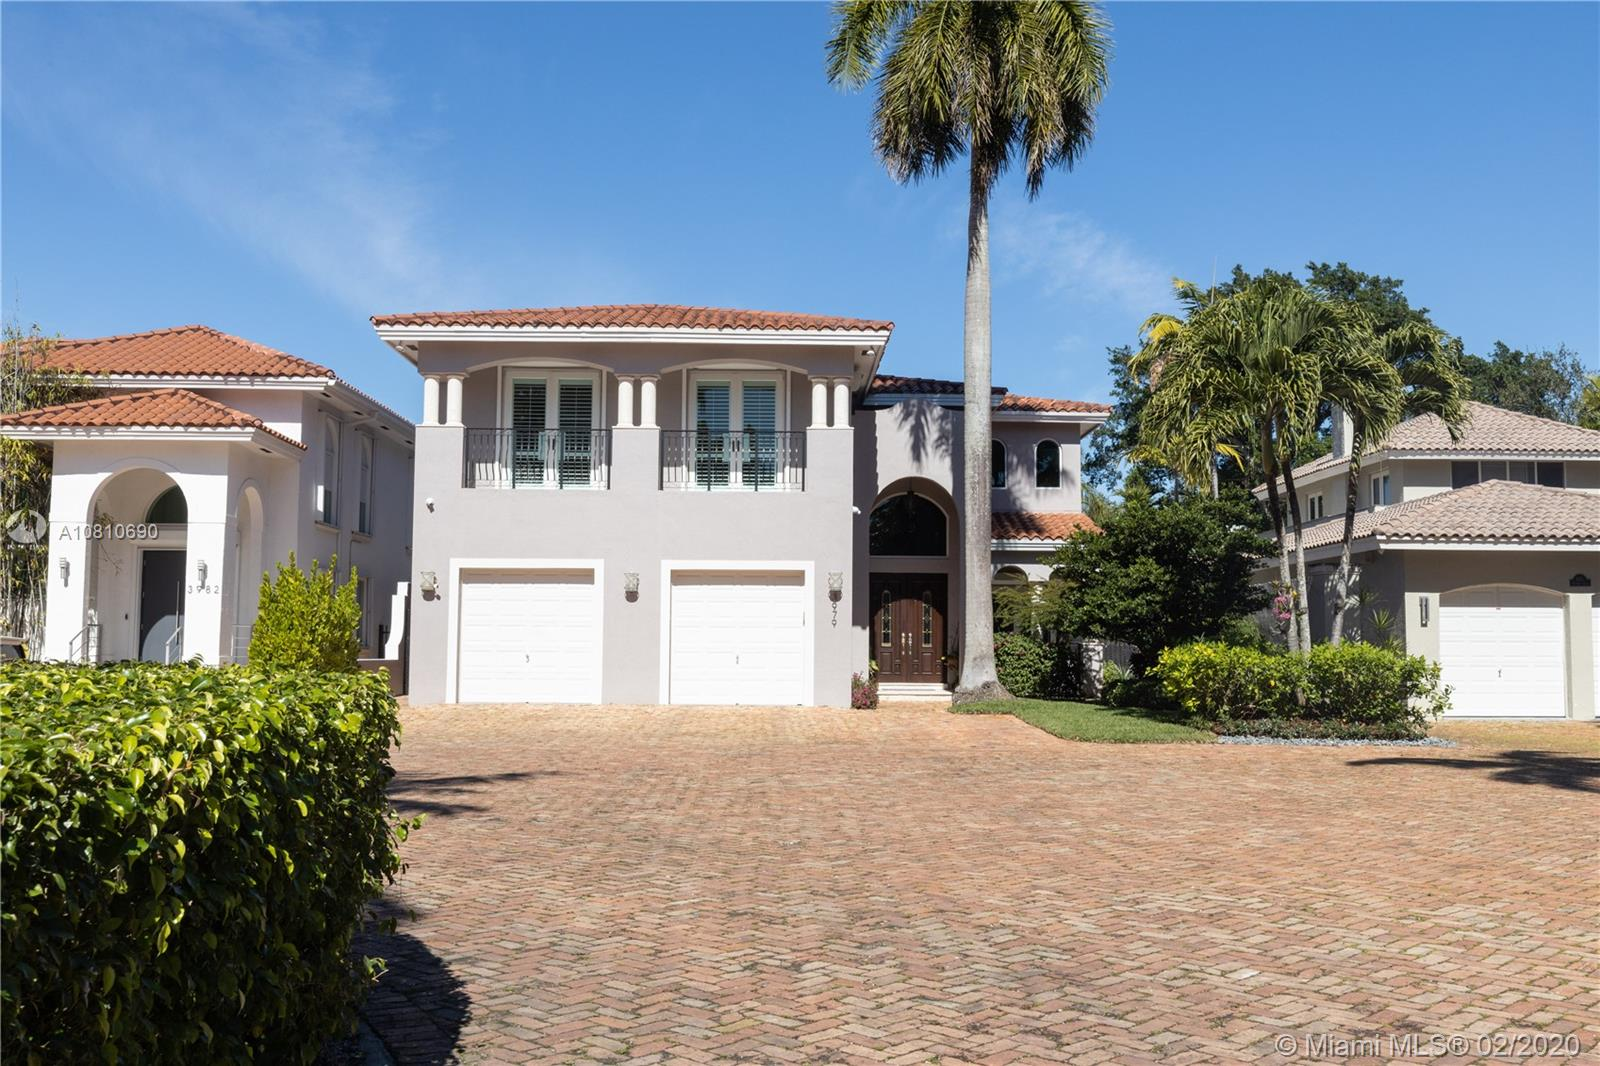 Details for 3979 Poinciana Closed Rd, Miami, FL 33133